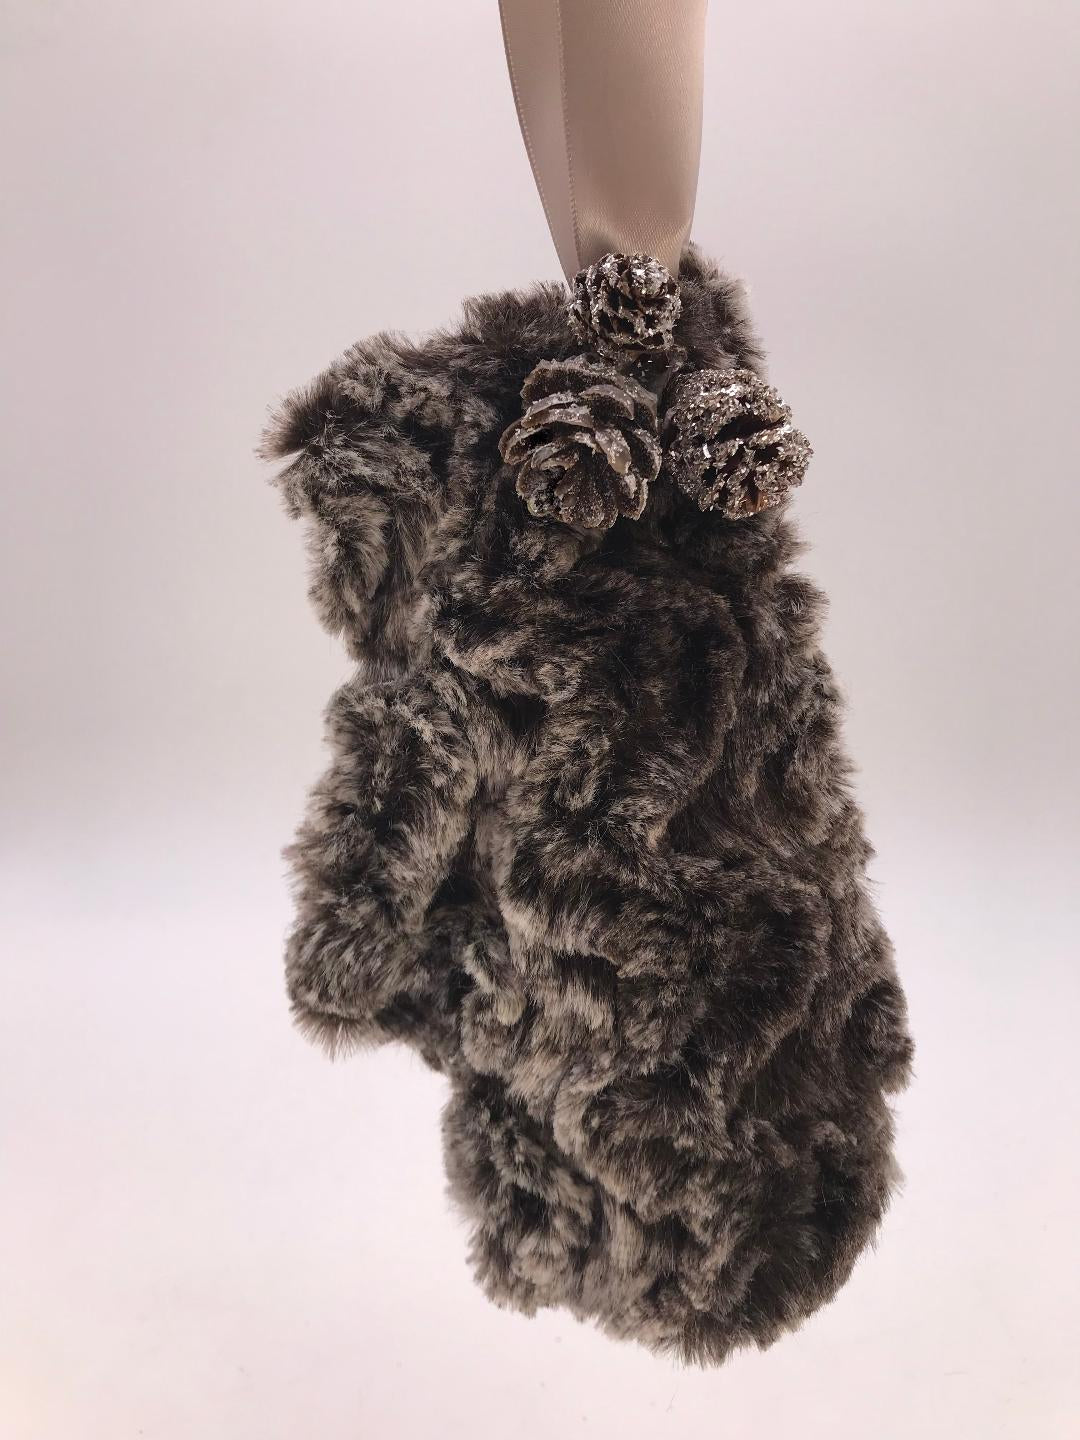 Mitten with Tiny Pinecones Ornament - Ash Fur